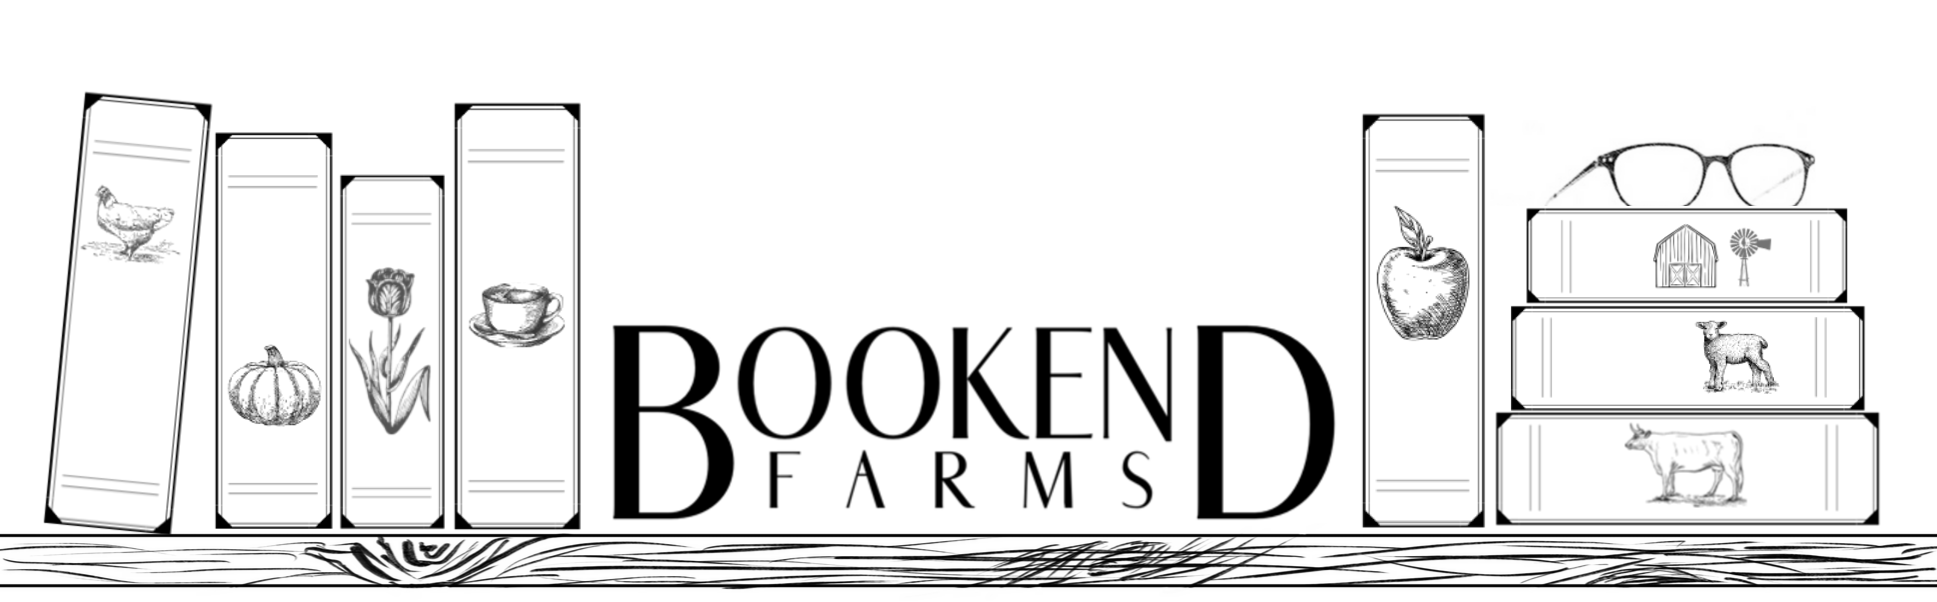 Bookend Farms